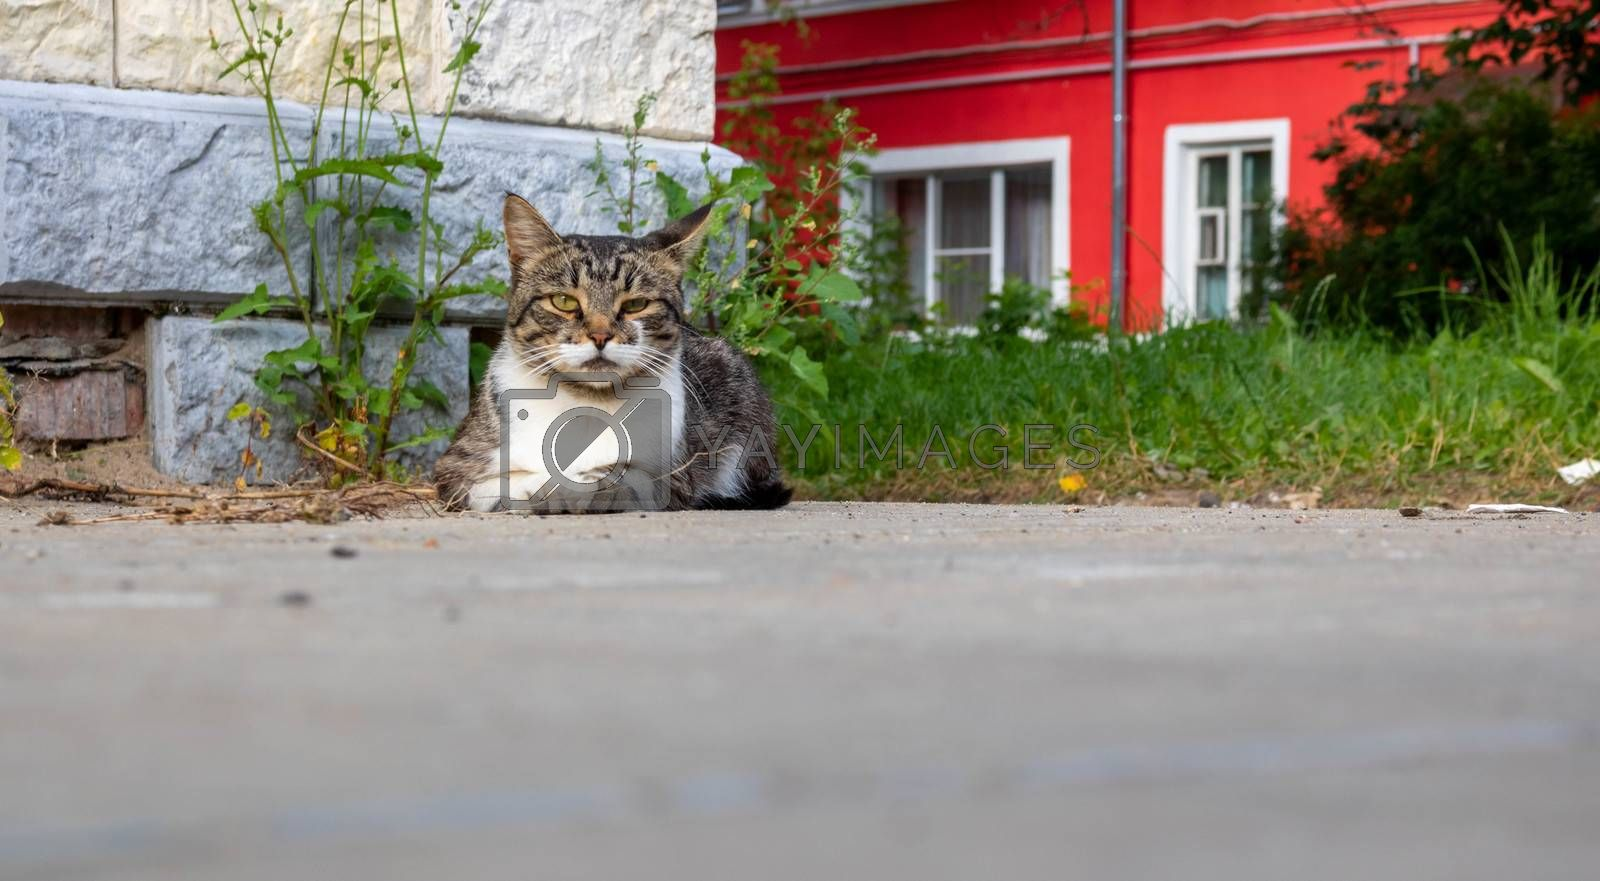 A street cat . A grey cat lies on the pavement and looks at the camera